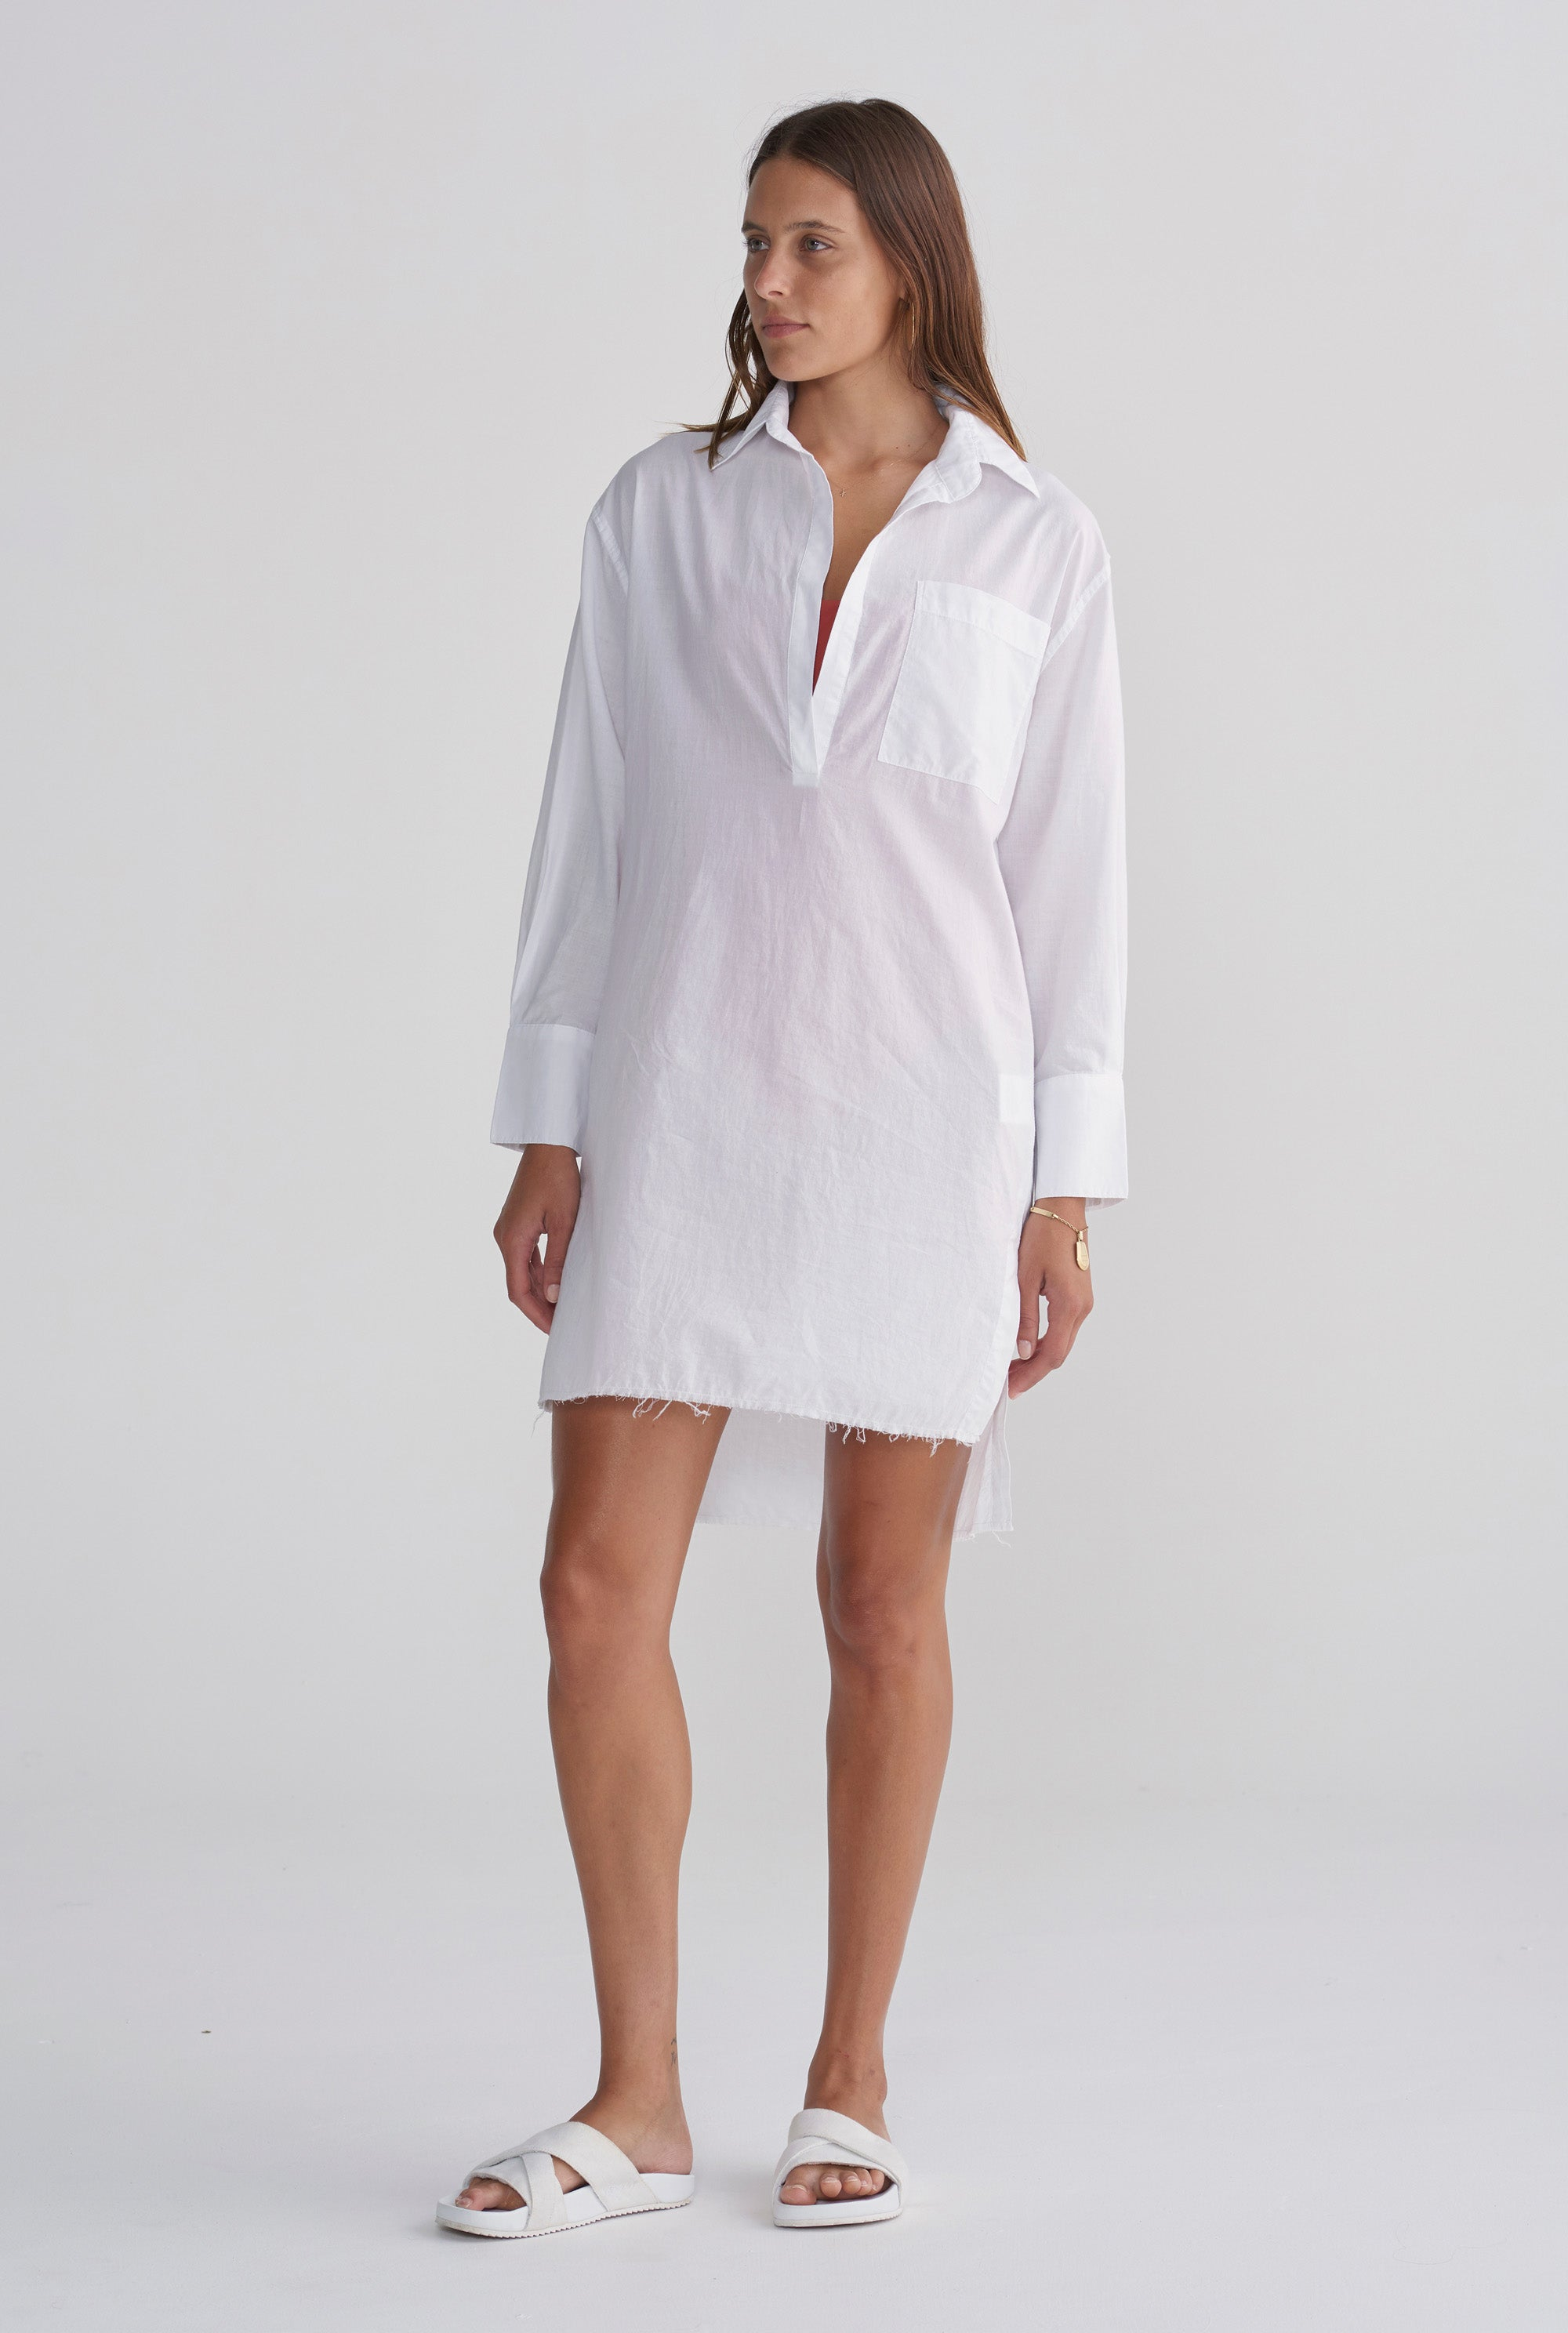 Pop Over Poplin Dress - White